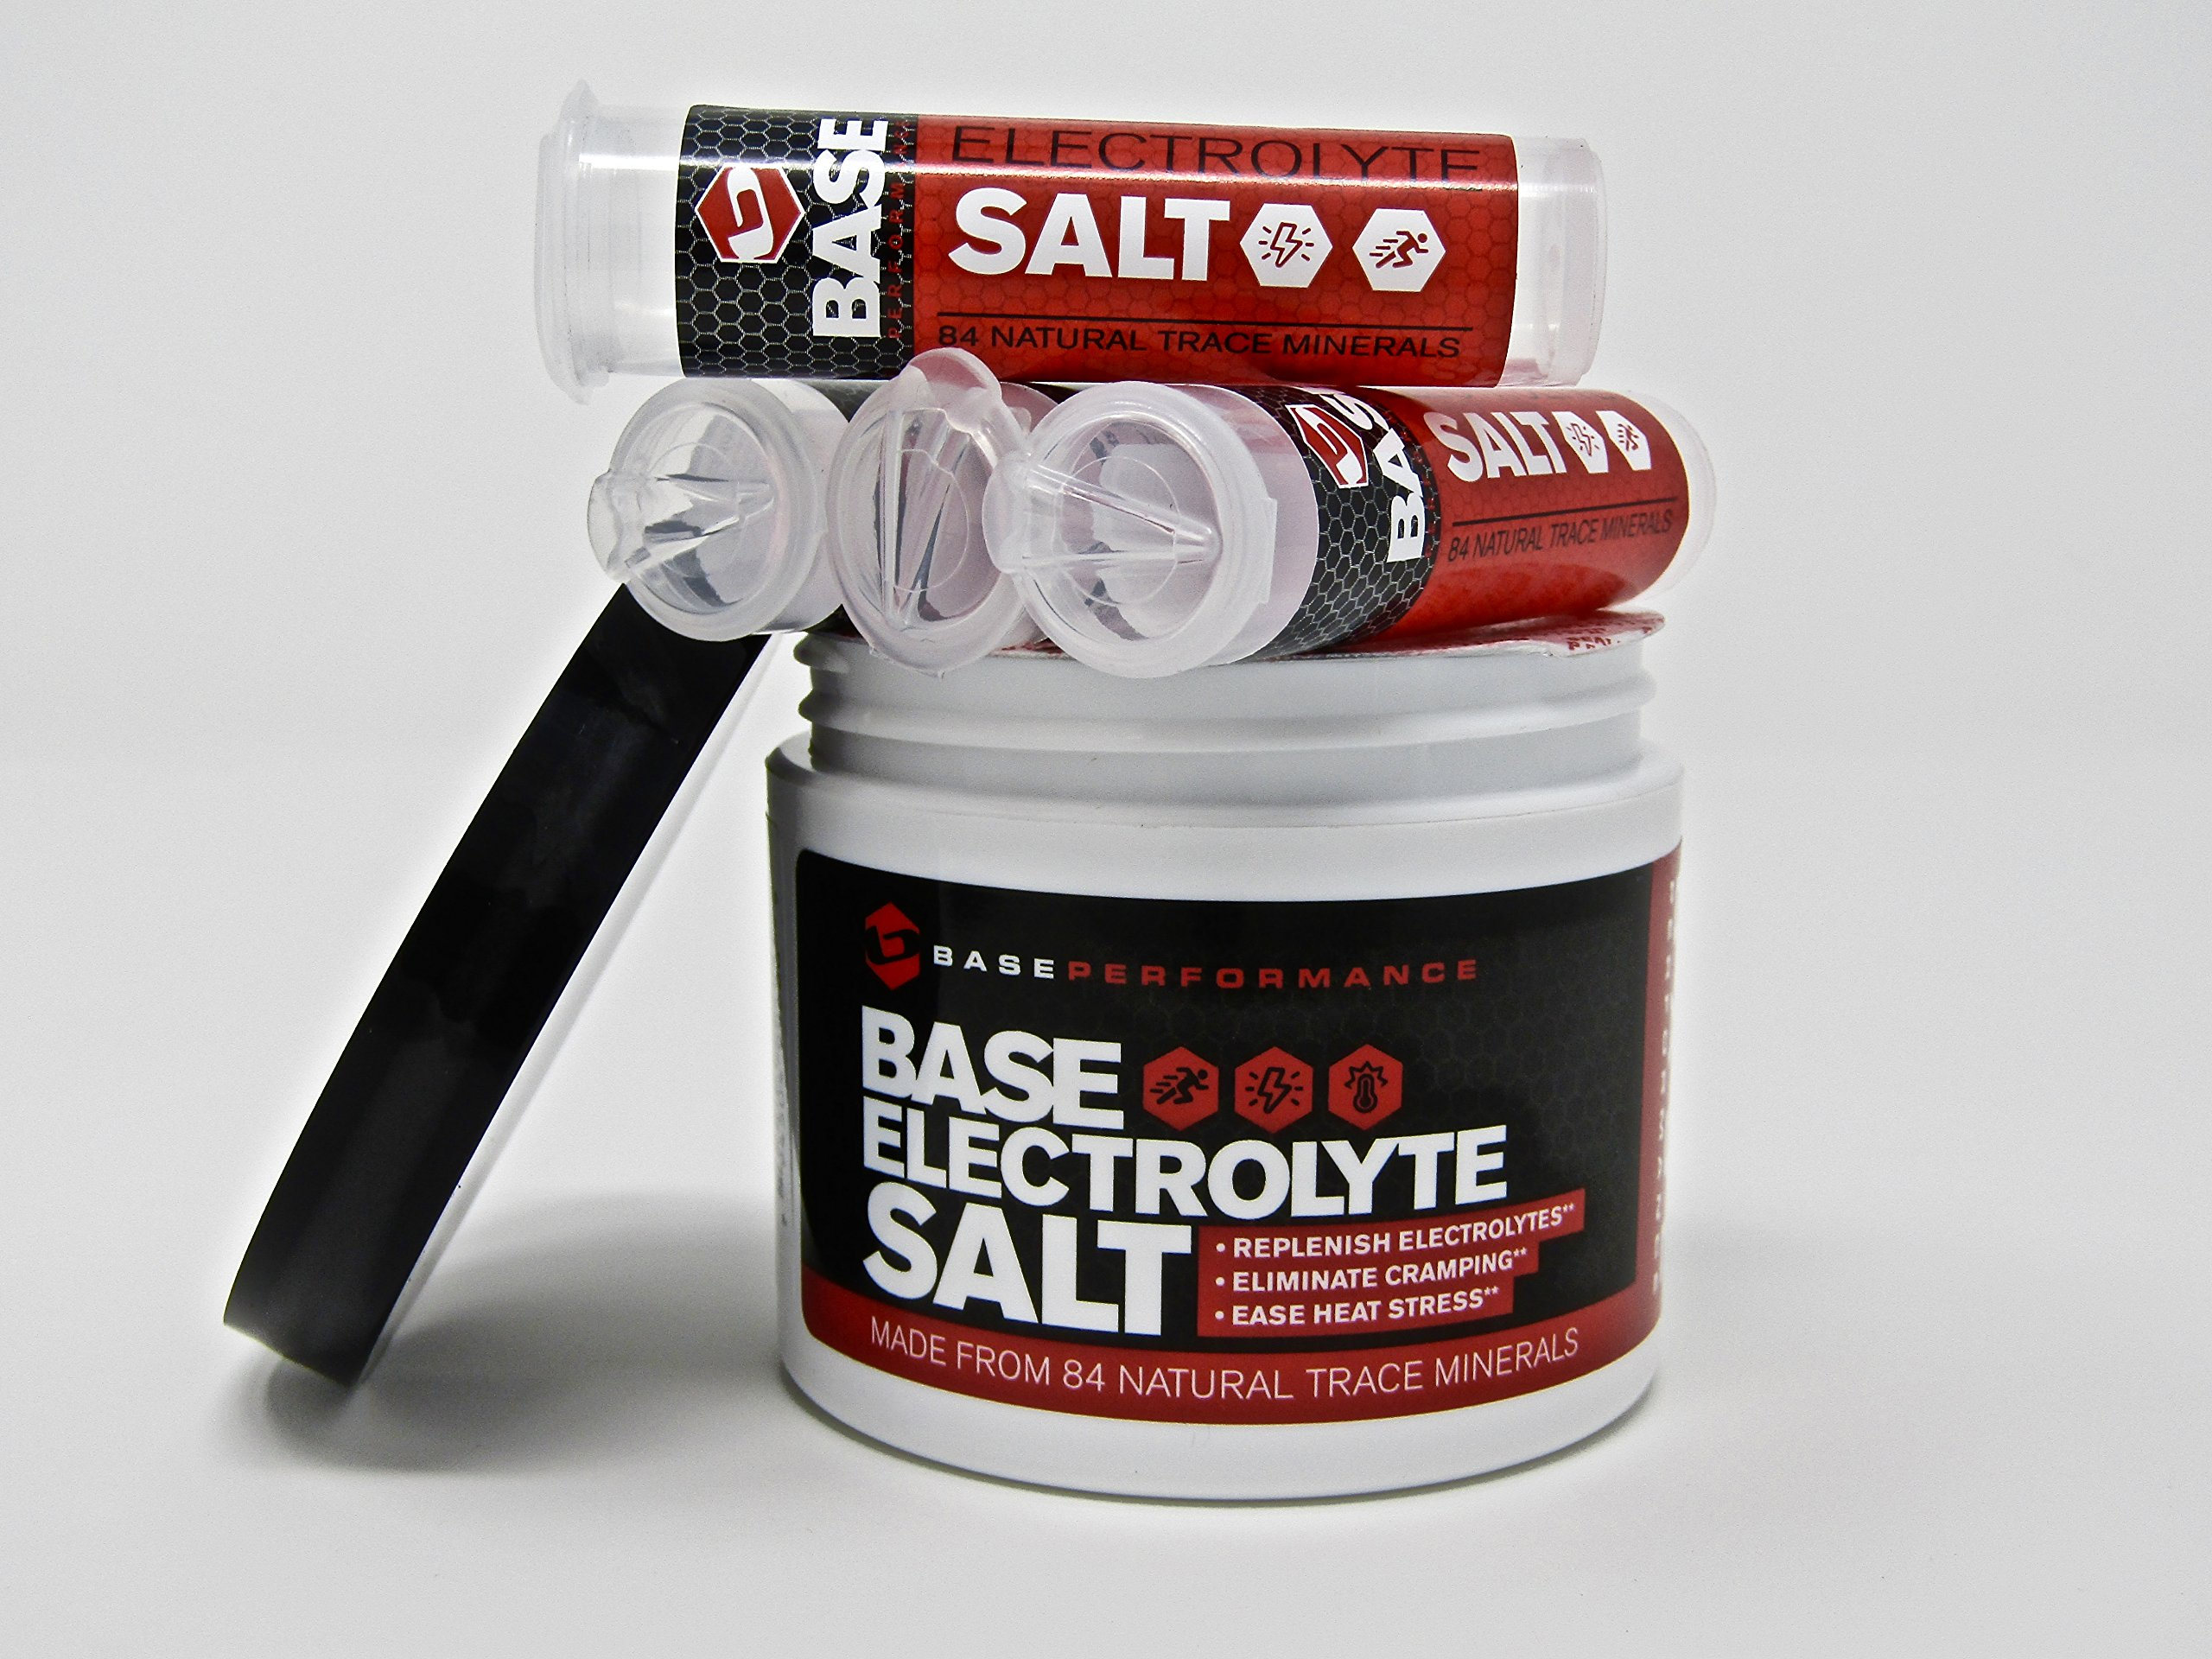 BASE Performance electrolyte salt   226 Servings tub with 4 refillable race vials. Prevent cramping and gastrointestinal distress using an all natural formula rapidly absorbed.